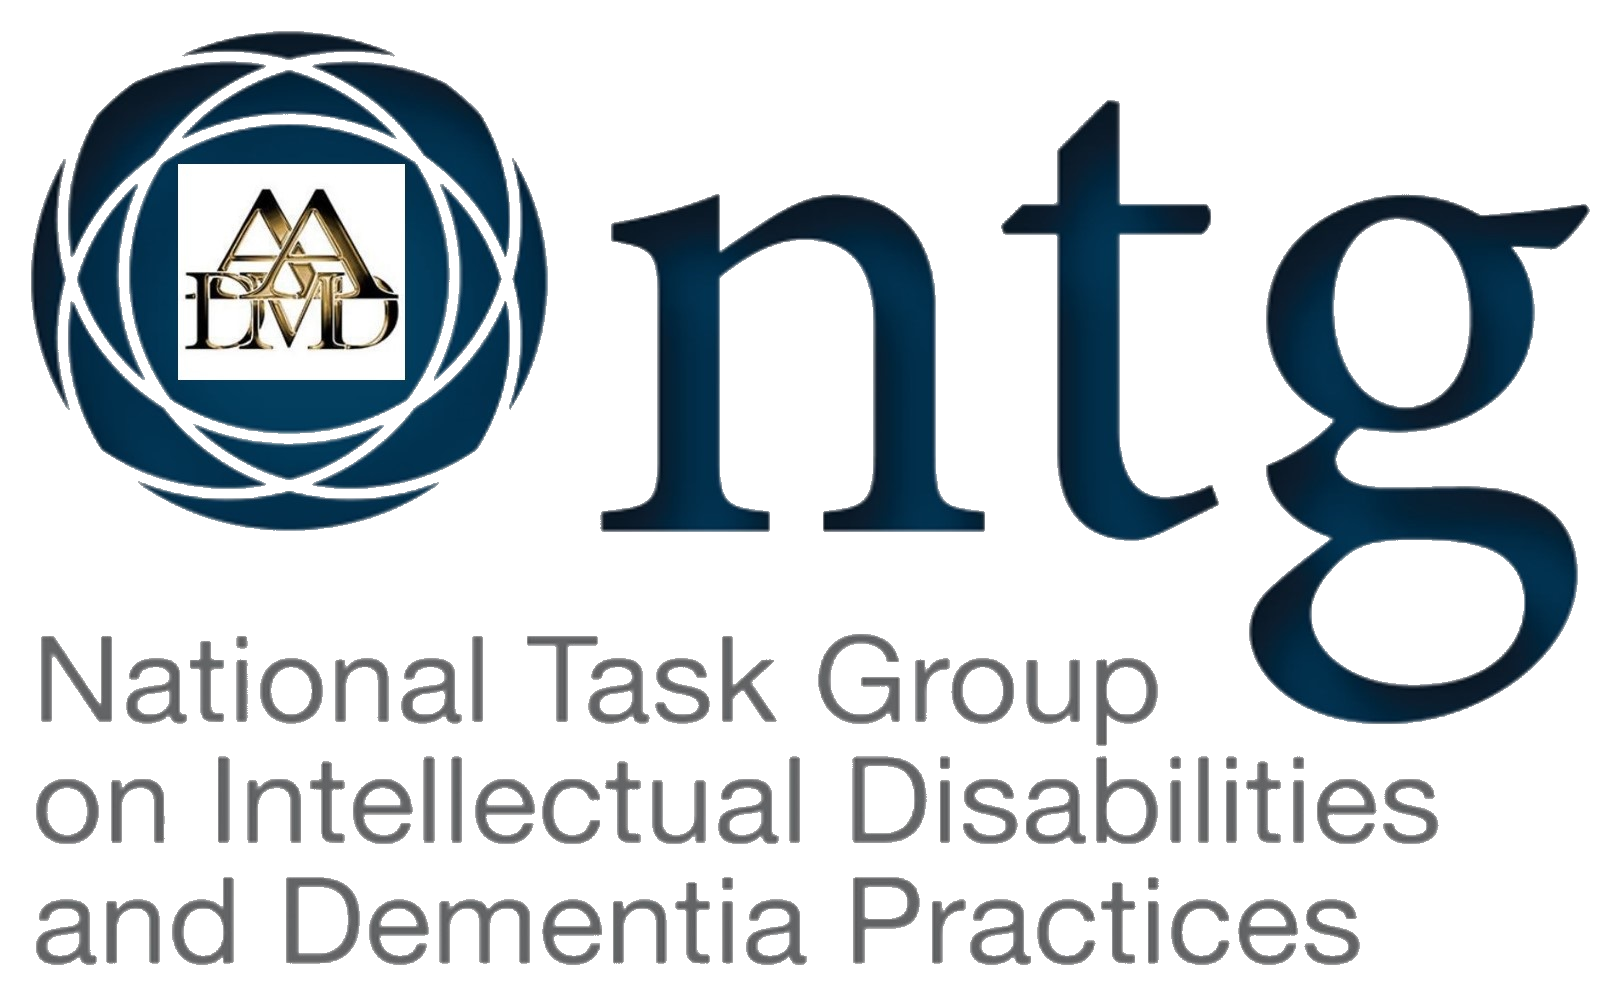 National Task Group on Intellectual Disabilities and Dementia Practices logo